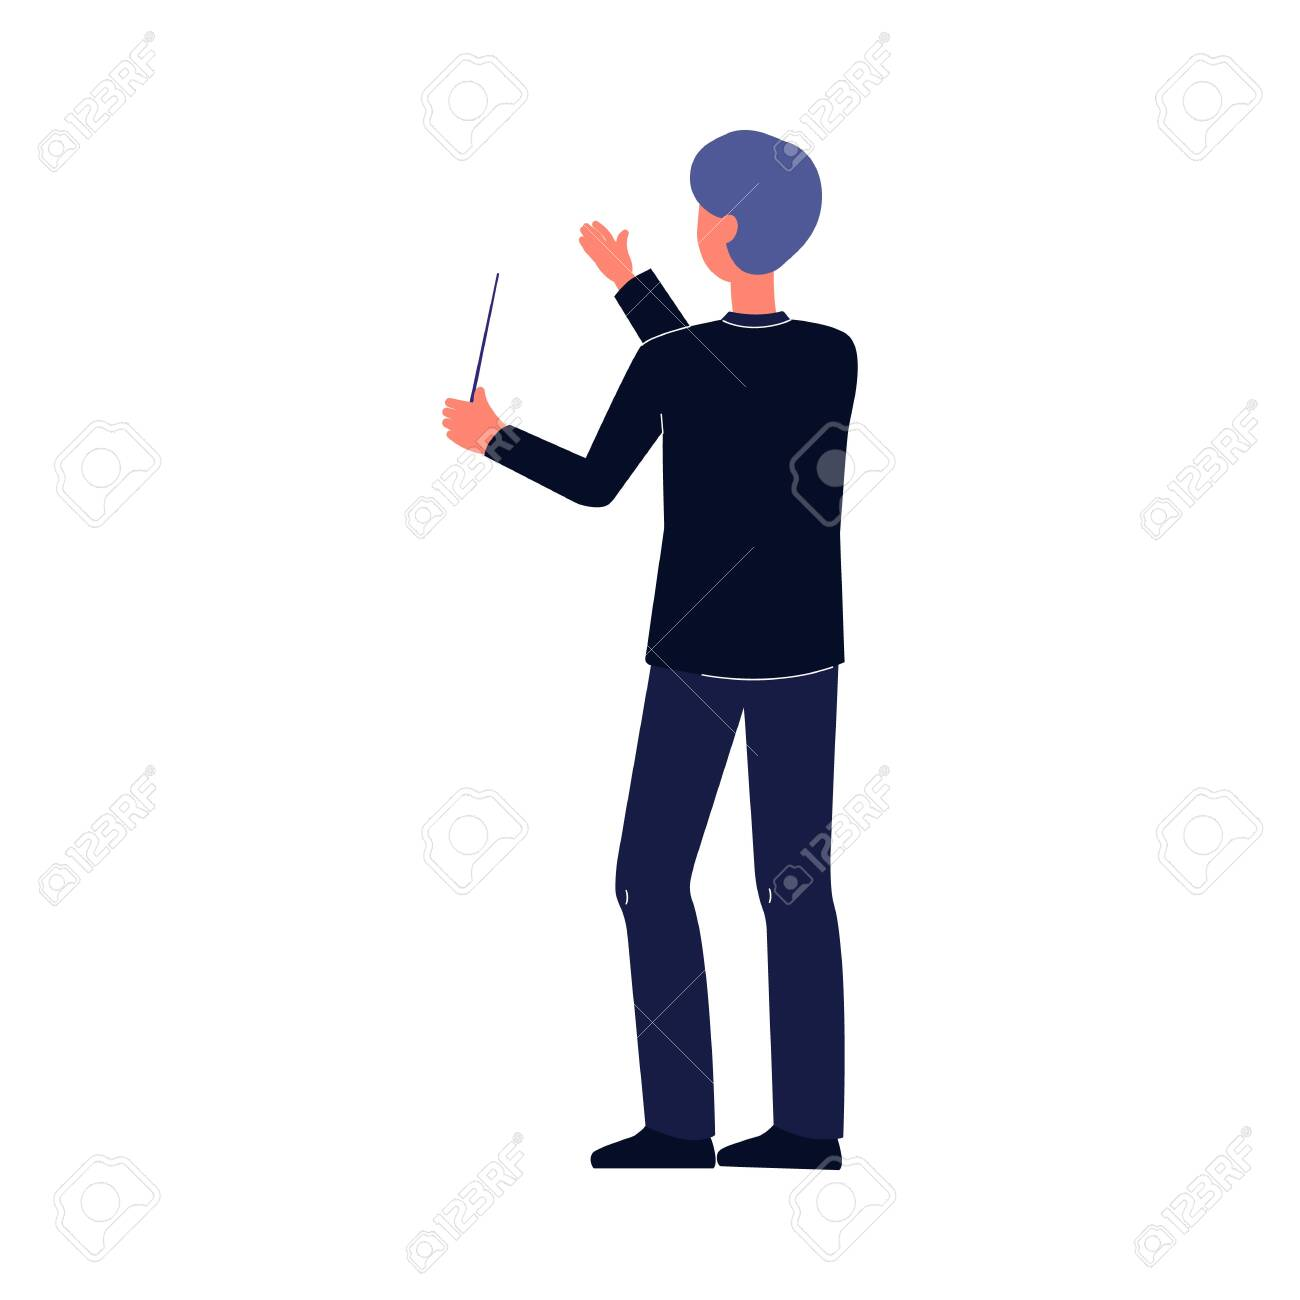 Orchestra conductor man holding baton stick and doing conducting hand gesture. Cartoon character performing in music event - isolated flat vector illustration. - 133494120